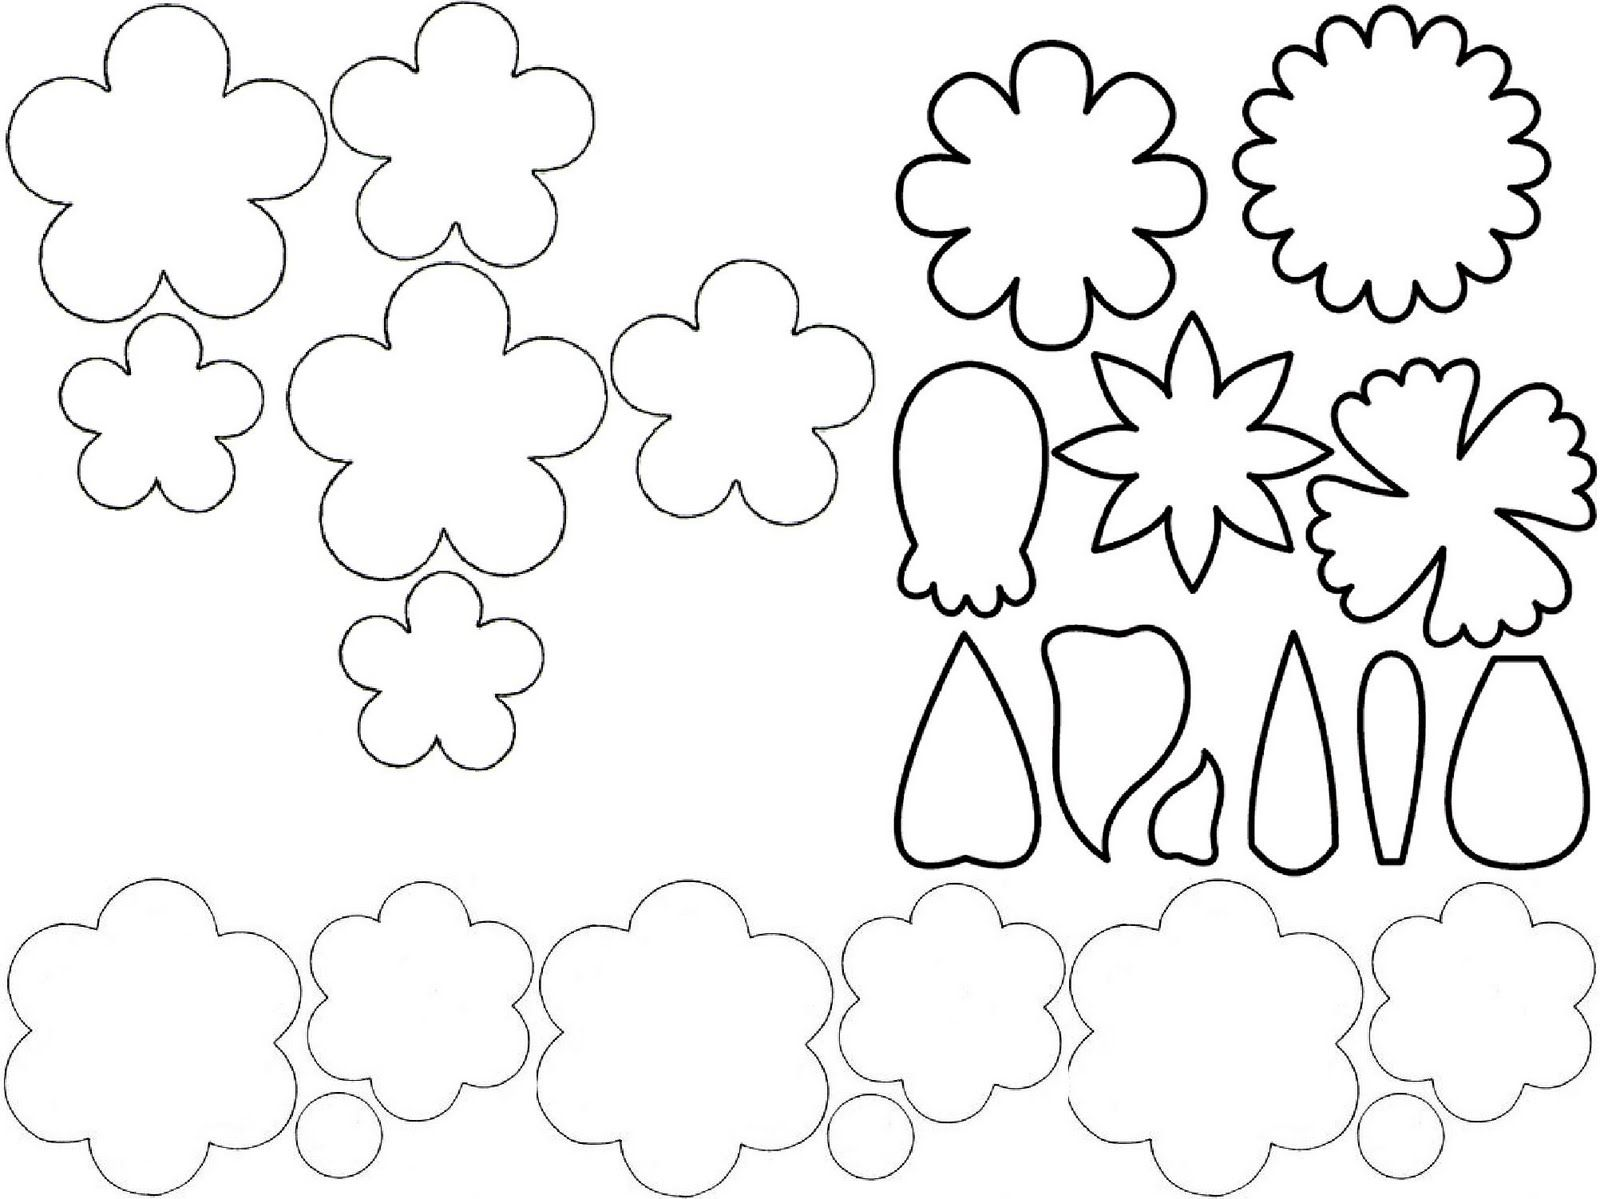 Flower Template For Cut Out Step 3 Cut Out Templates Trace Onto